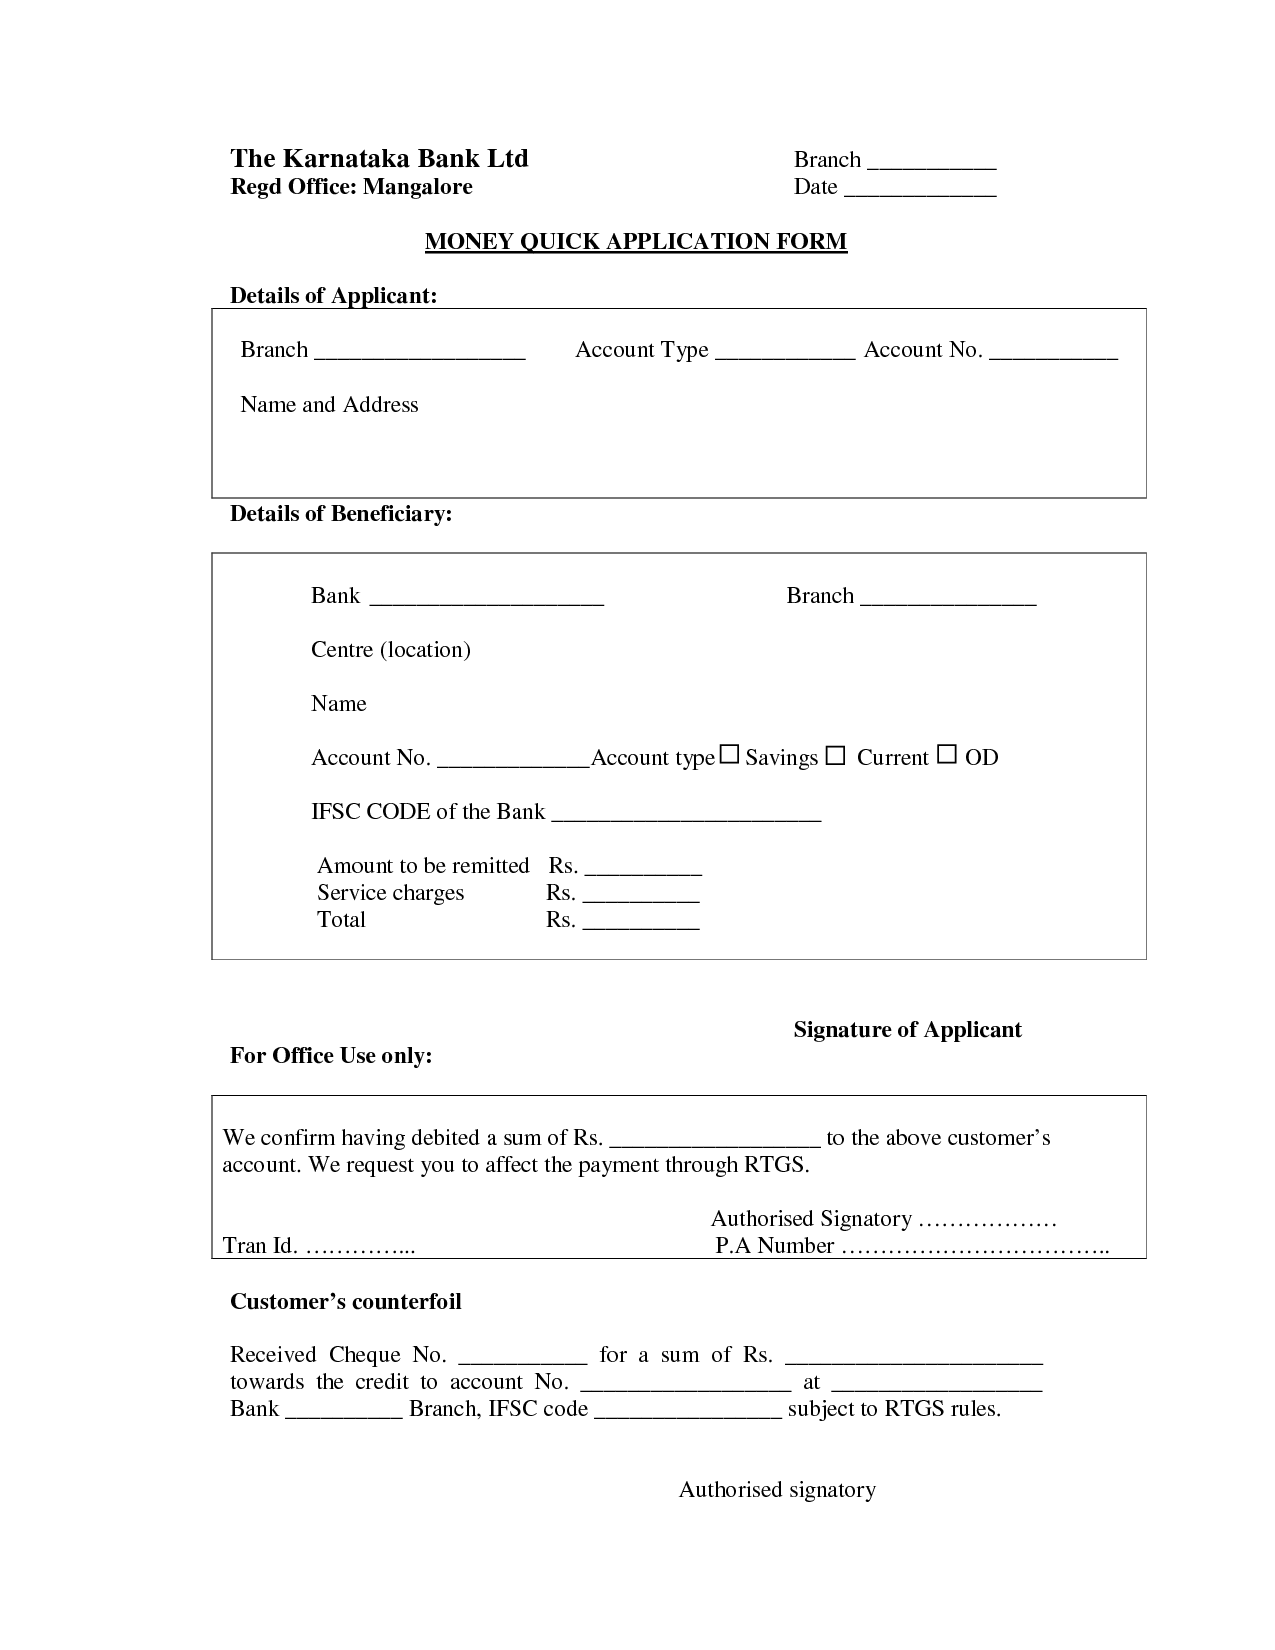 Karnataka Bank Rtgs Application Form  Sony Pharmaceuticals